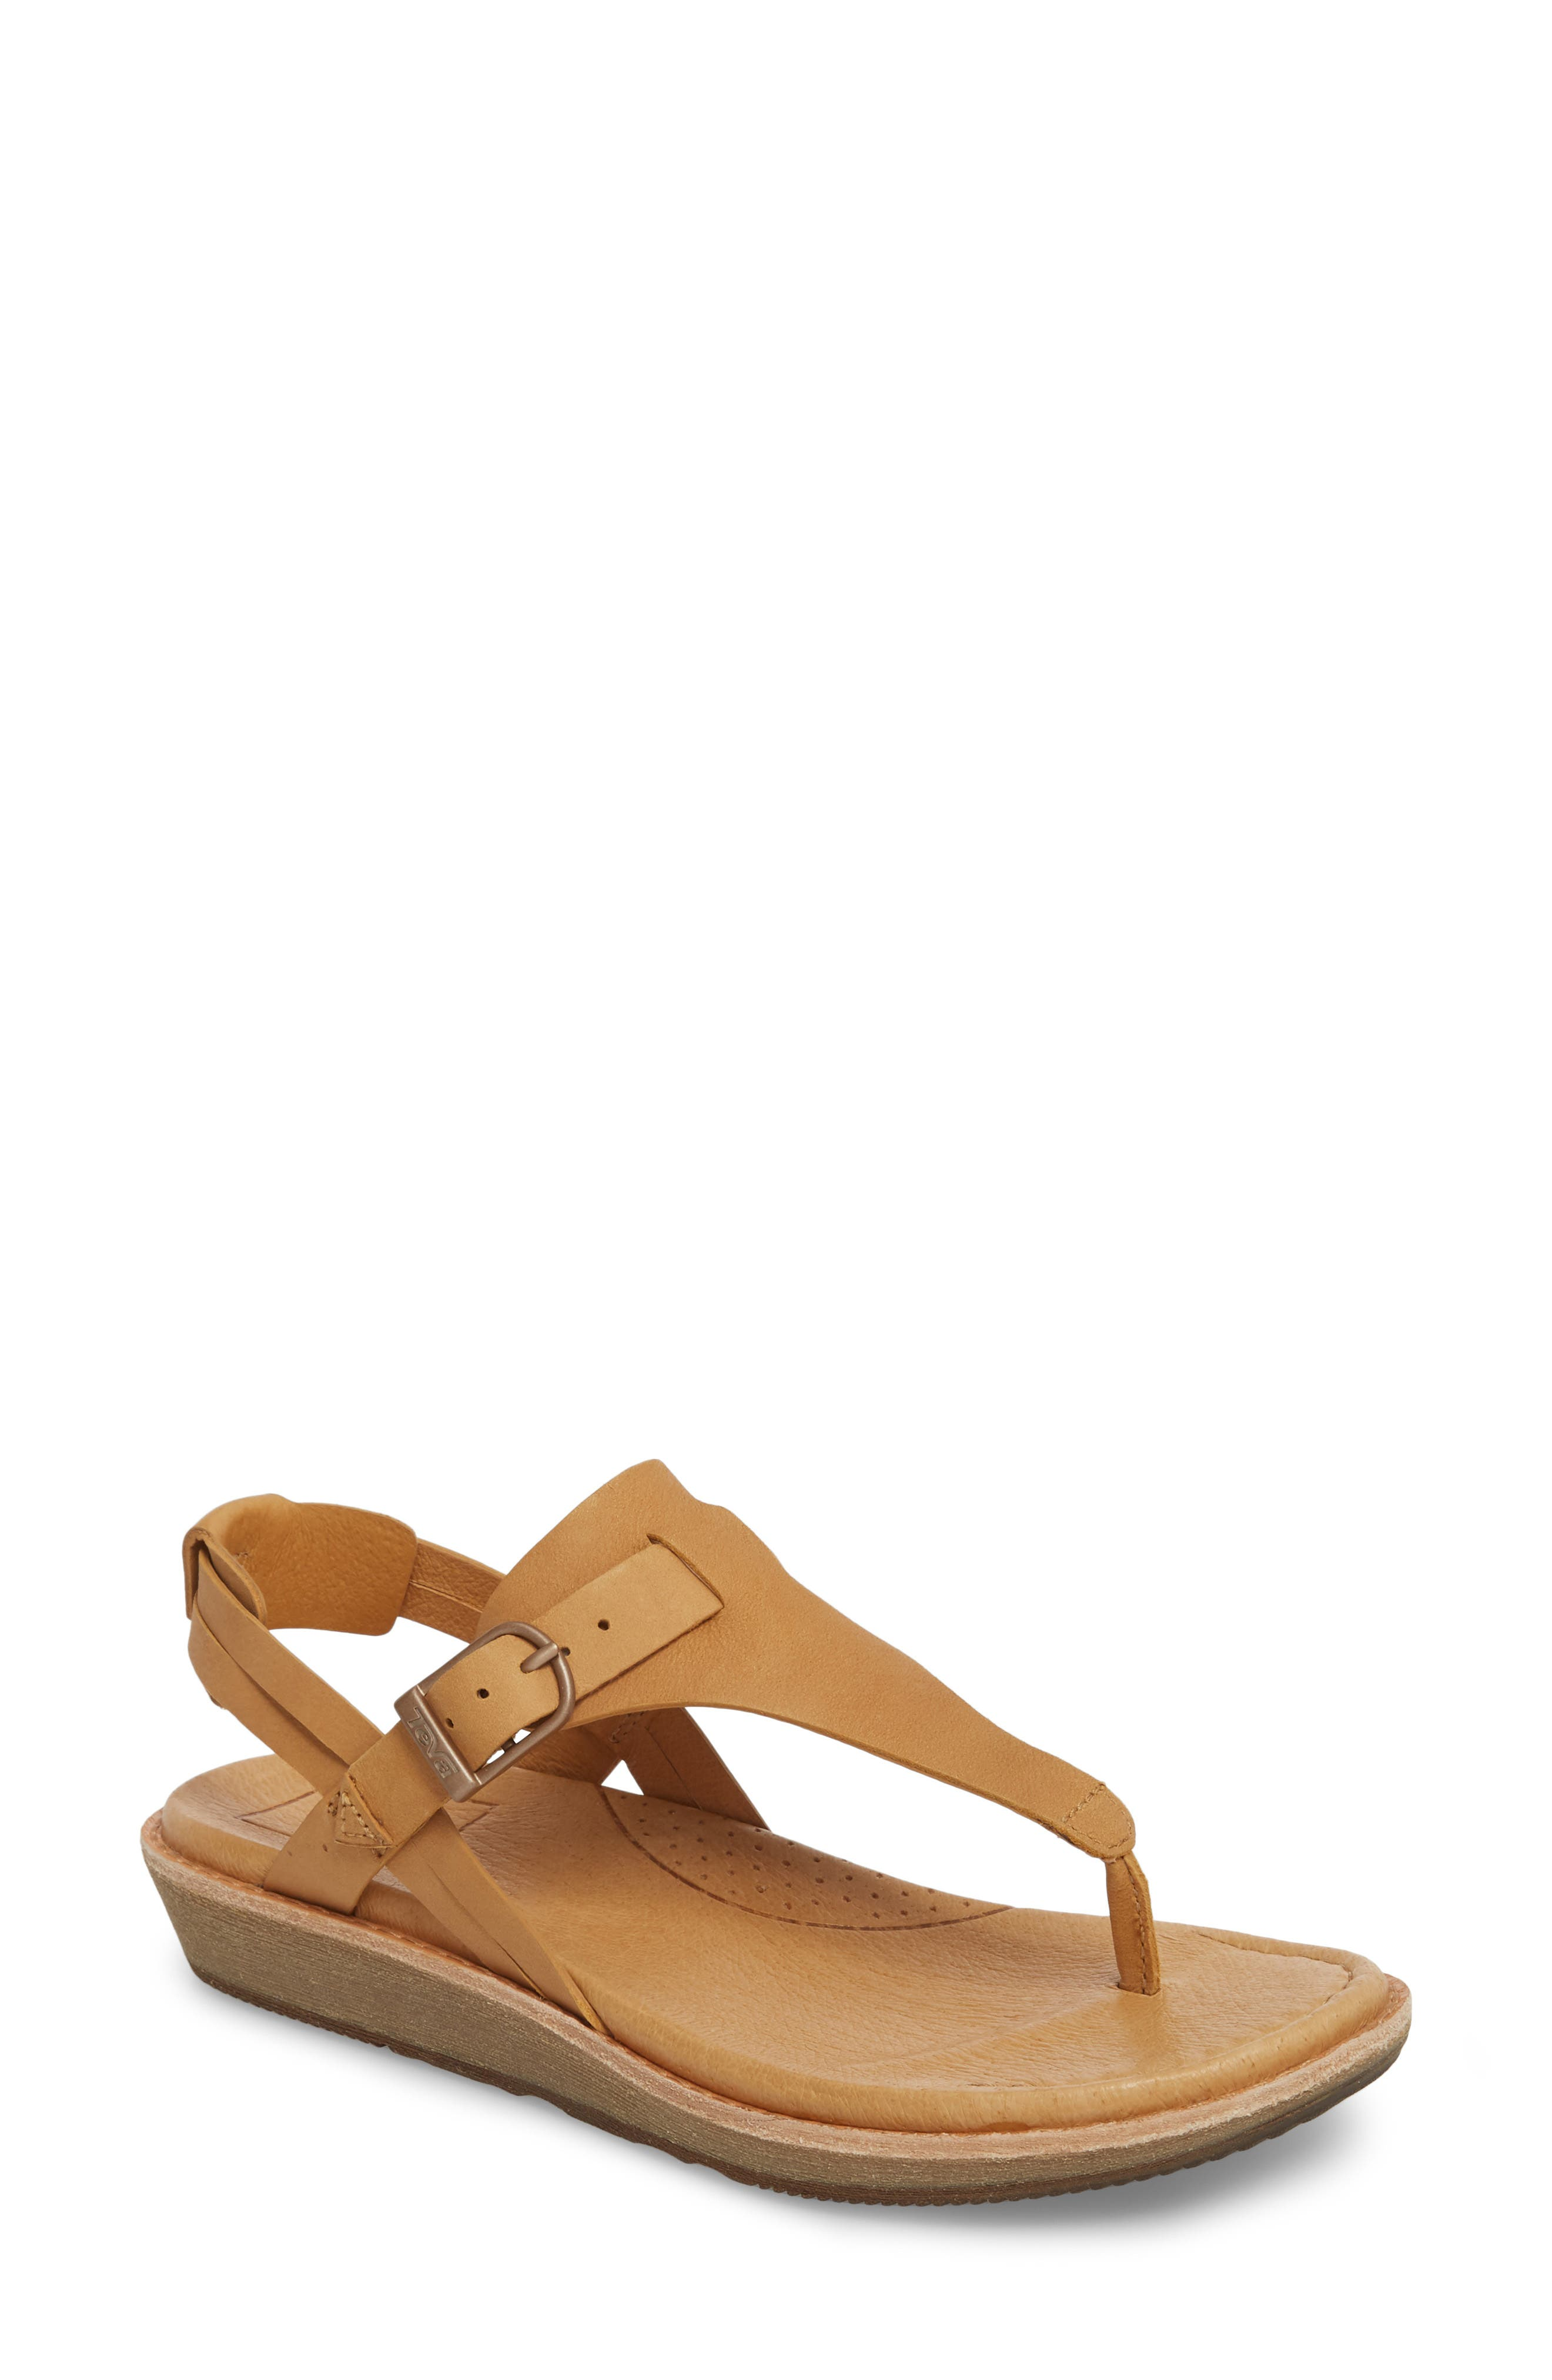 Encanta V-Strap Sandal,                             Main thumbnail 1, color,                             TAN